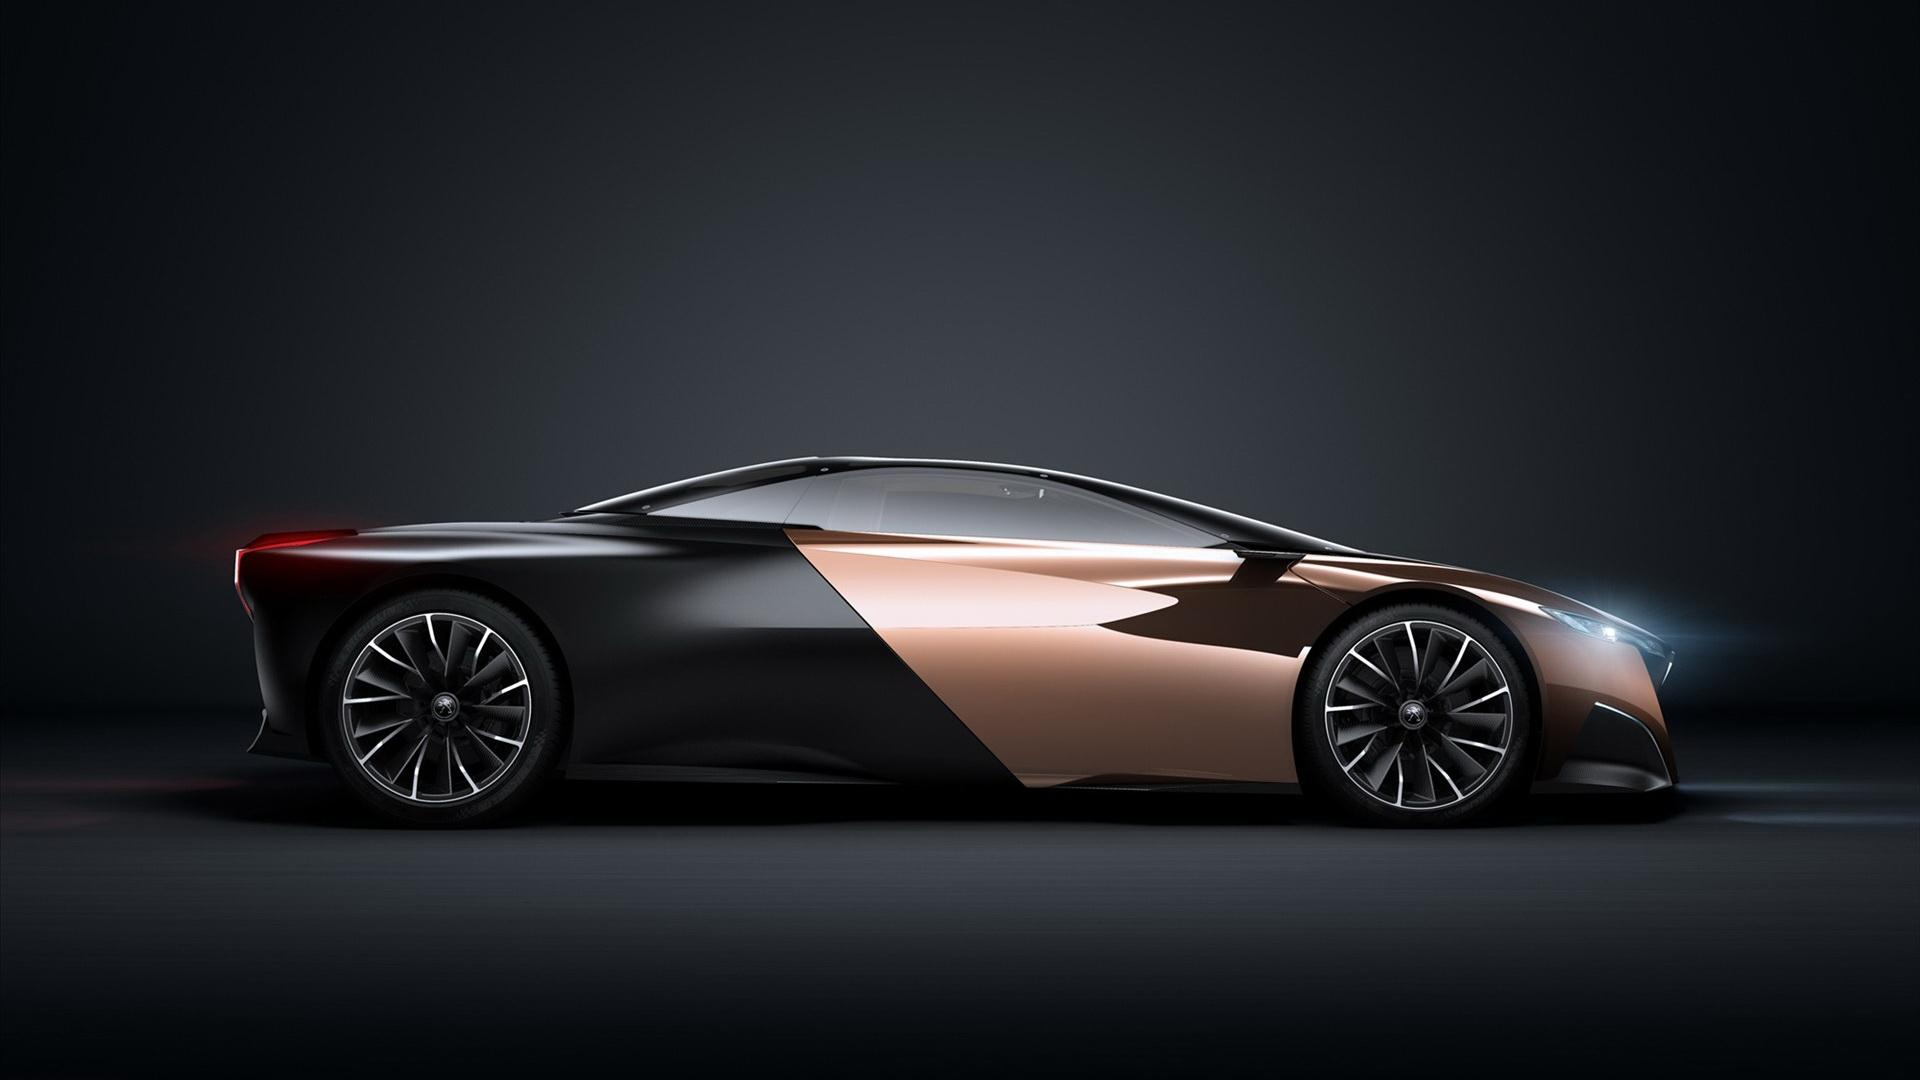 concept car hd wallpaper - photo #14